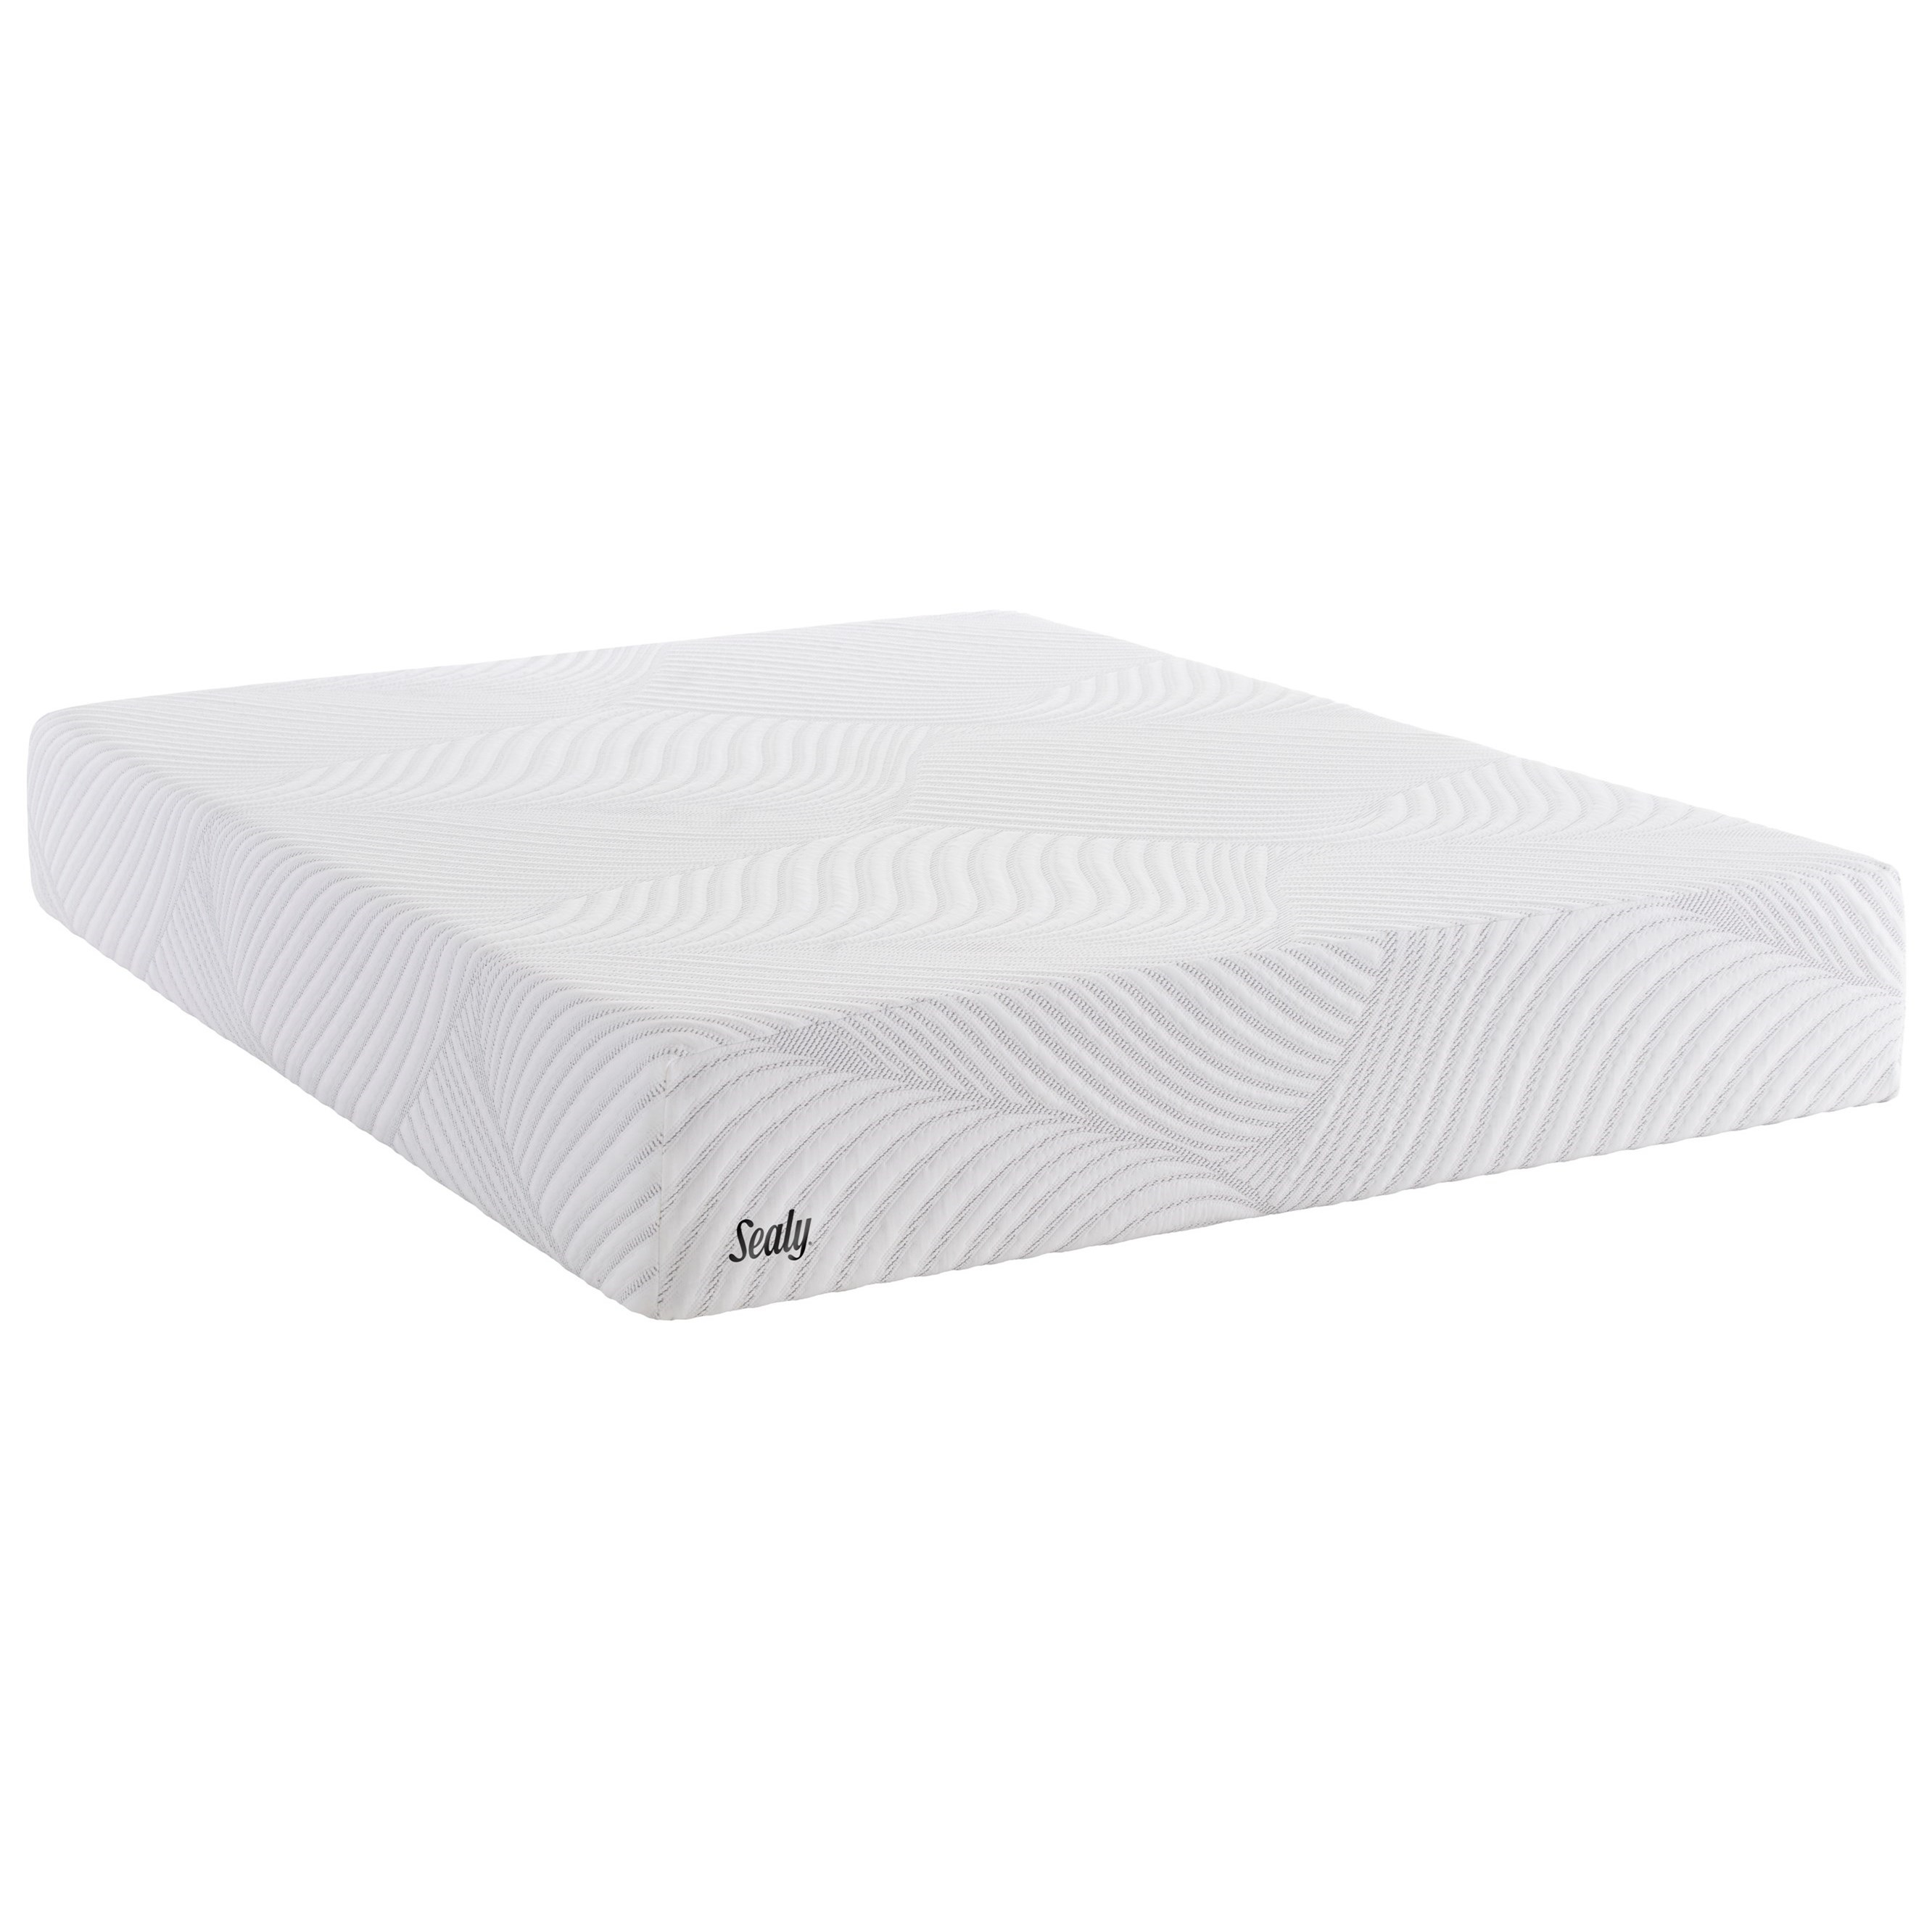 "Upbeat Cal King 9"" Gel Memory Foam Mattress"